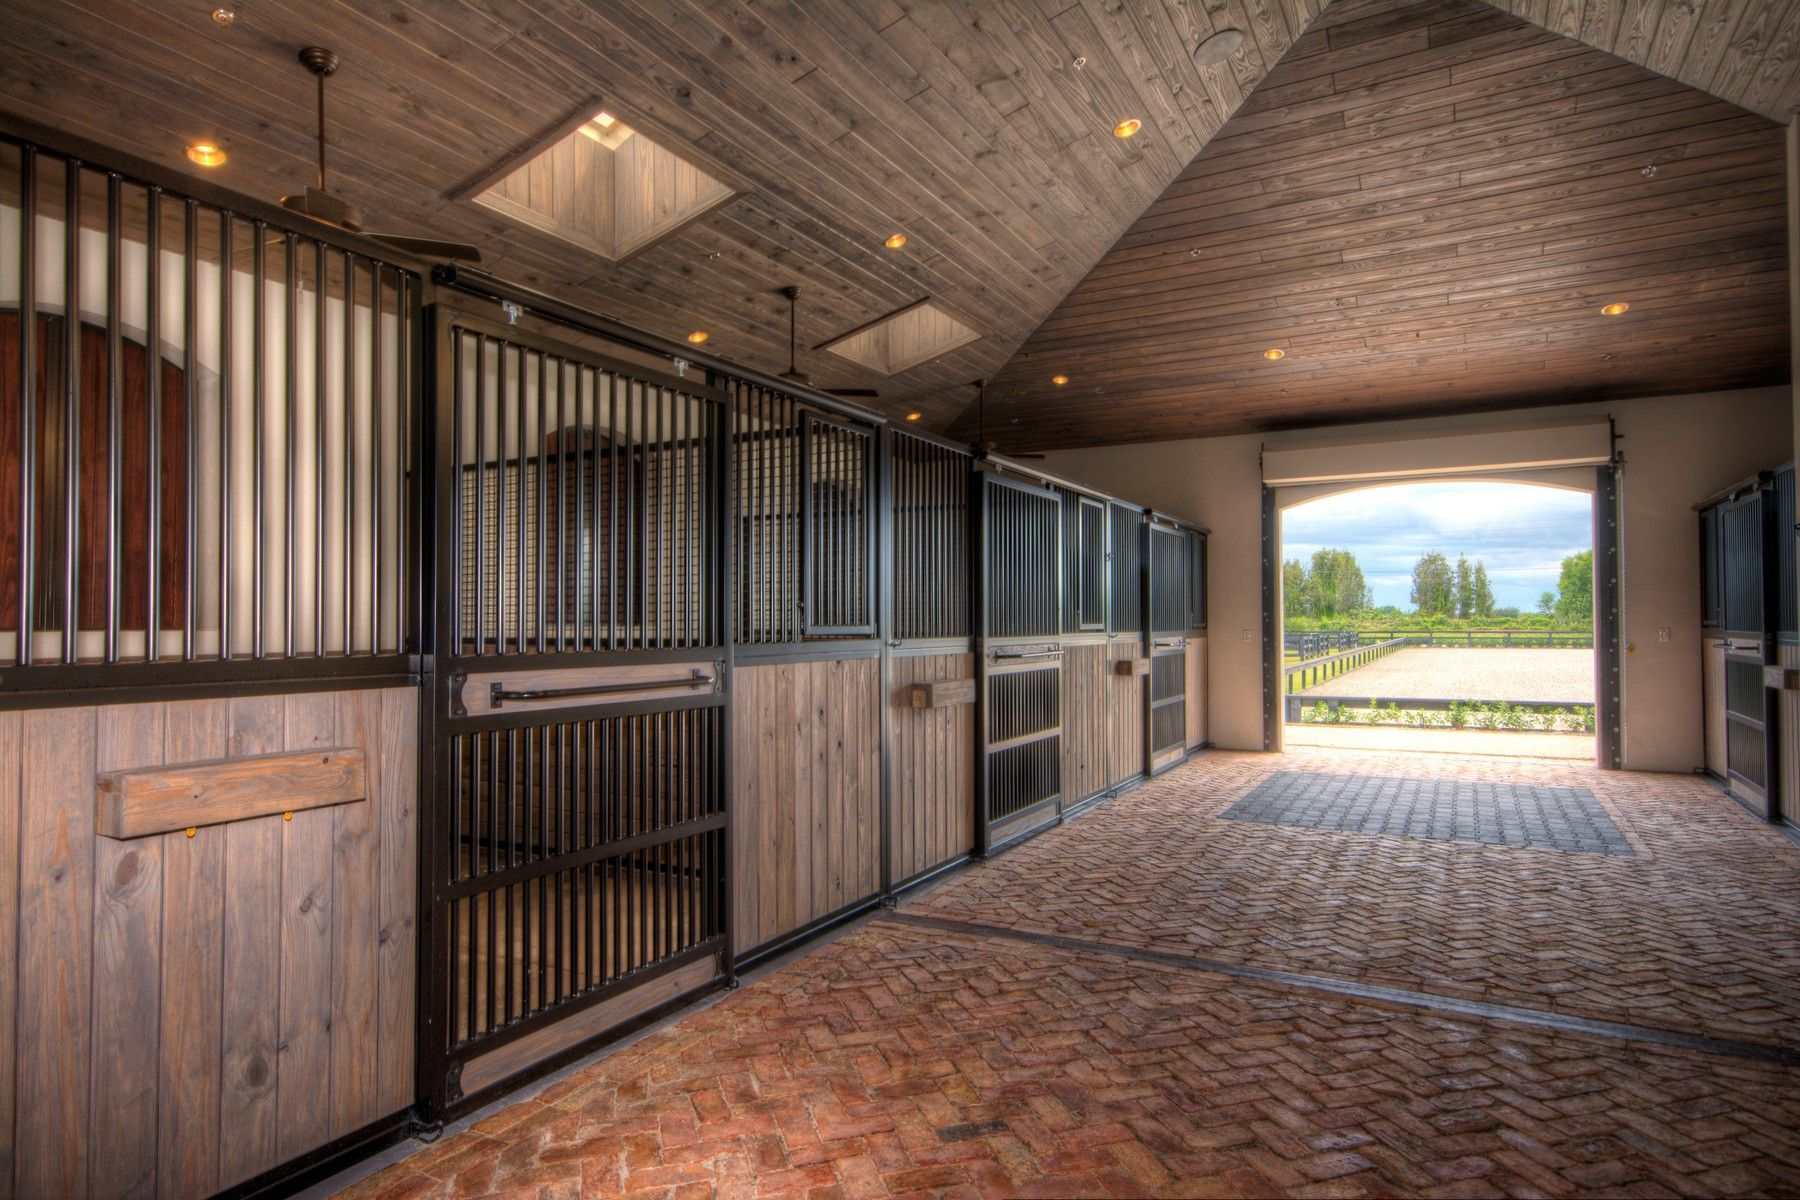 Boston Grand Prix >> Sunset West Farm - a spectacular equestrian facility on Grand Prix Village Drive, Wellington ...